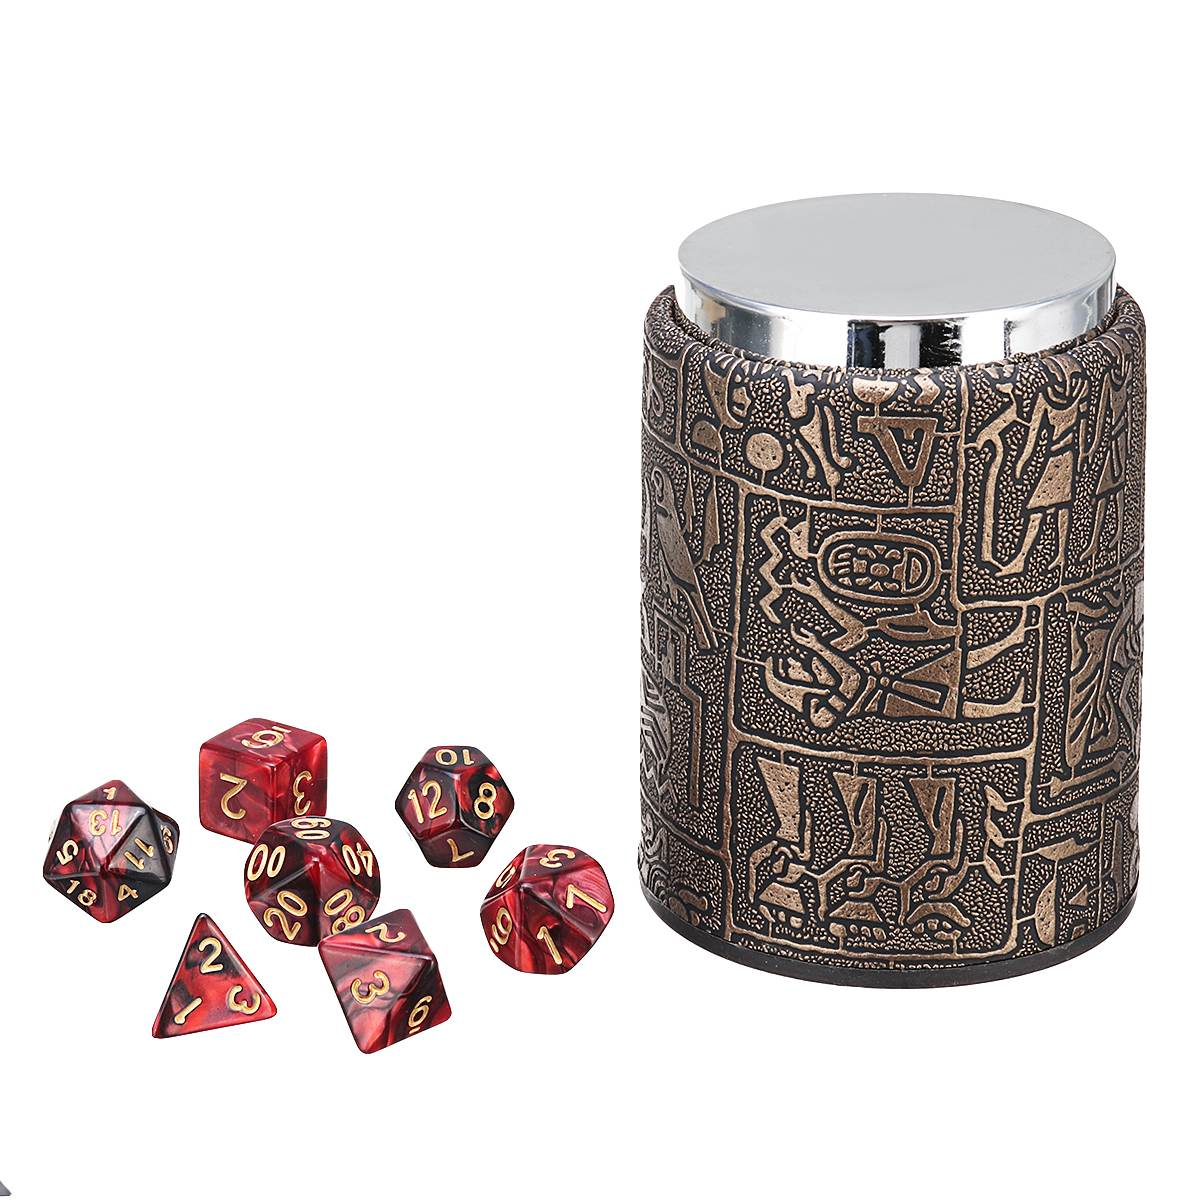 7 Pcs Polyhedral Dices + Dice Cup For Dungeons and Dragons DND RPG MTG Desk Game Durble Quality acrylic polyhedral dice for board game translucent light blue 5 pcs